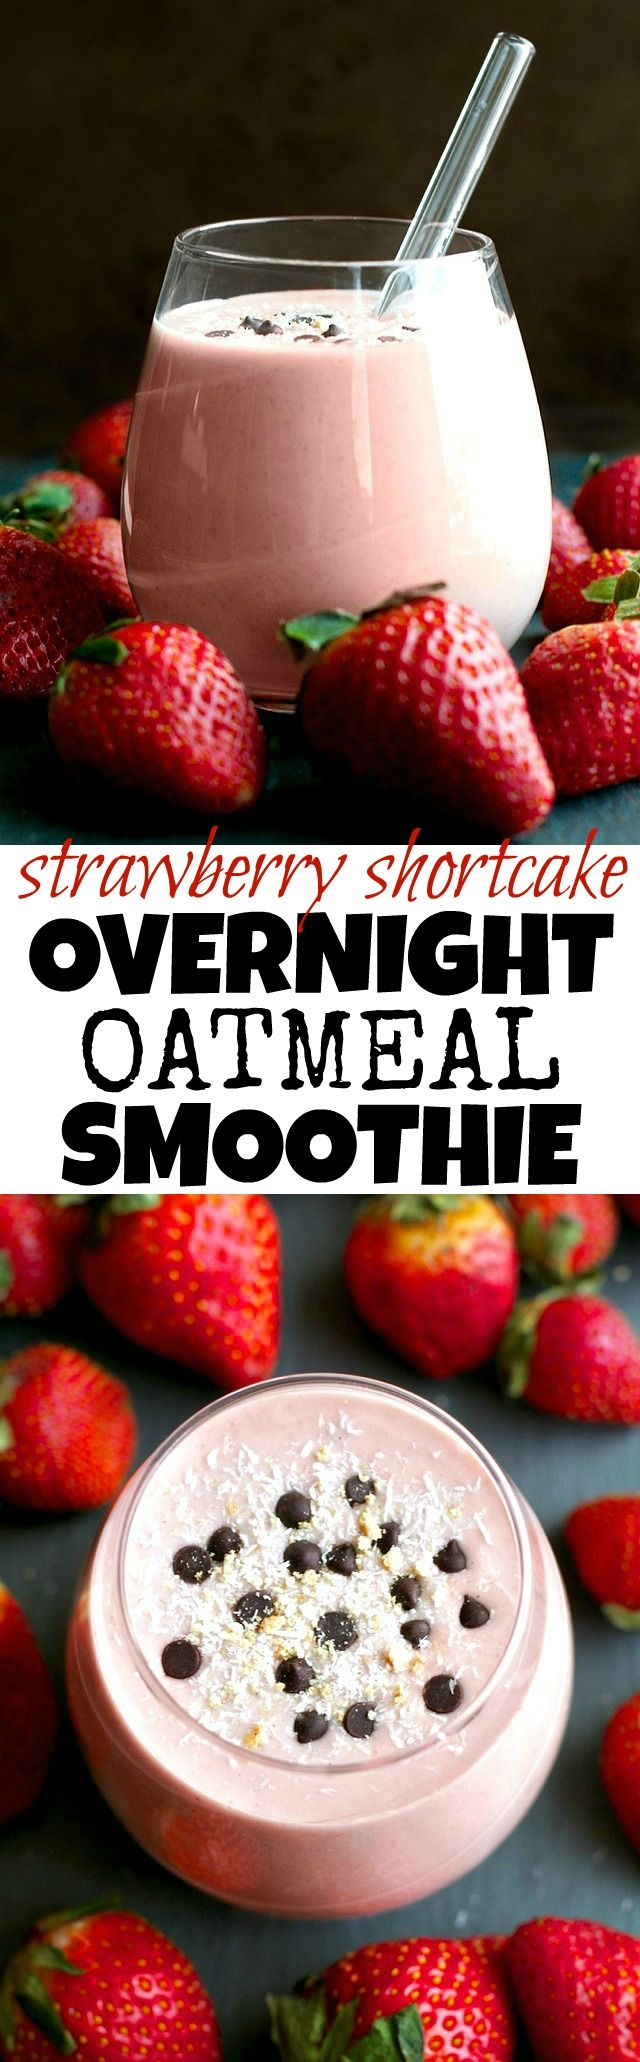 You've never had oatmeal like this before! This thick and creamy Strawberry Shortcake Overnight Oatmeal Smoothie combines that stick-to-your-ribs feeling of a bowl of oats with the silky smooth texture of a smoothie!   runningwithspoons.com #vegan #gluten